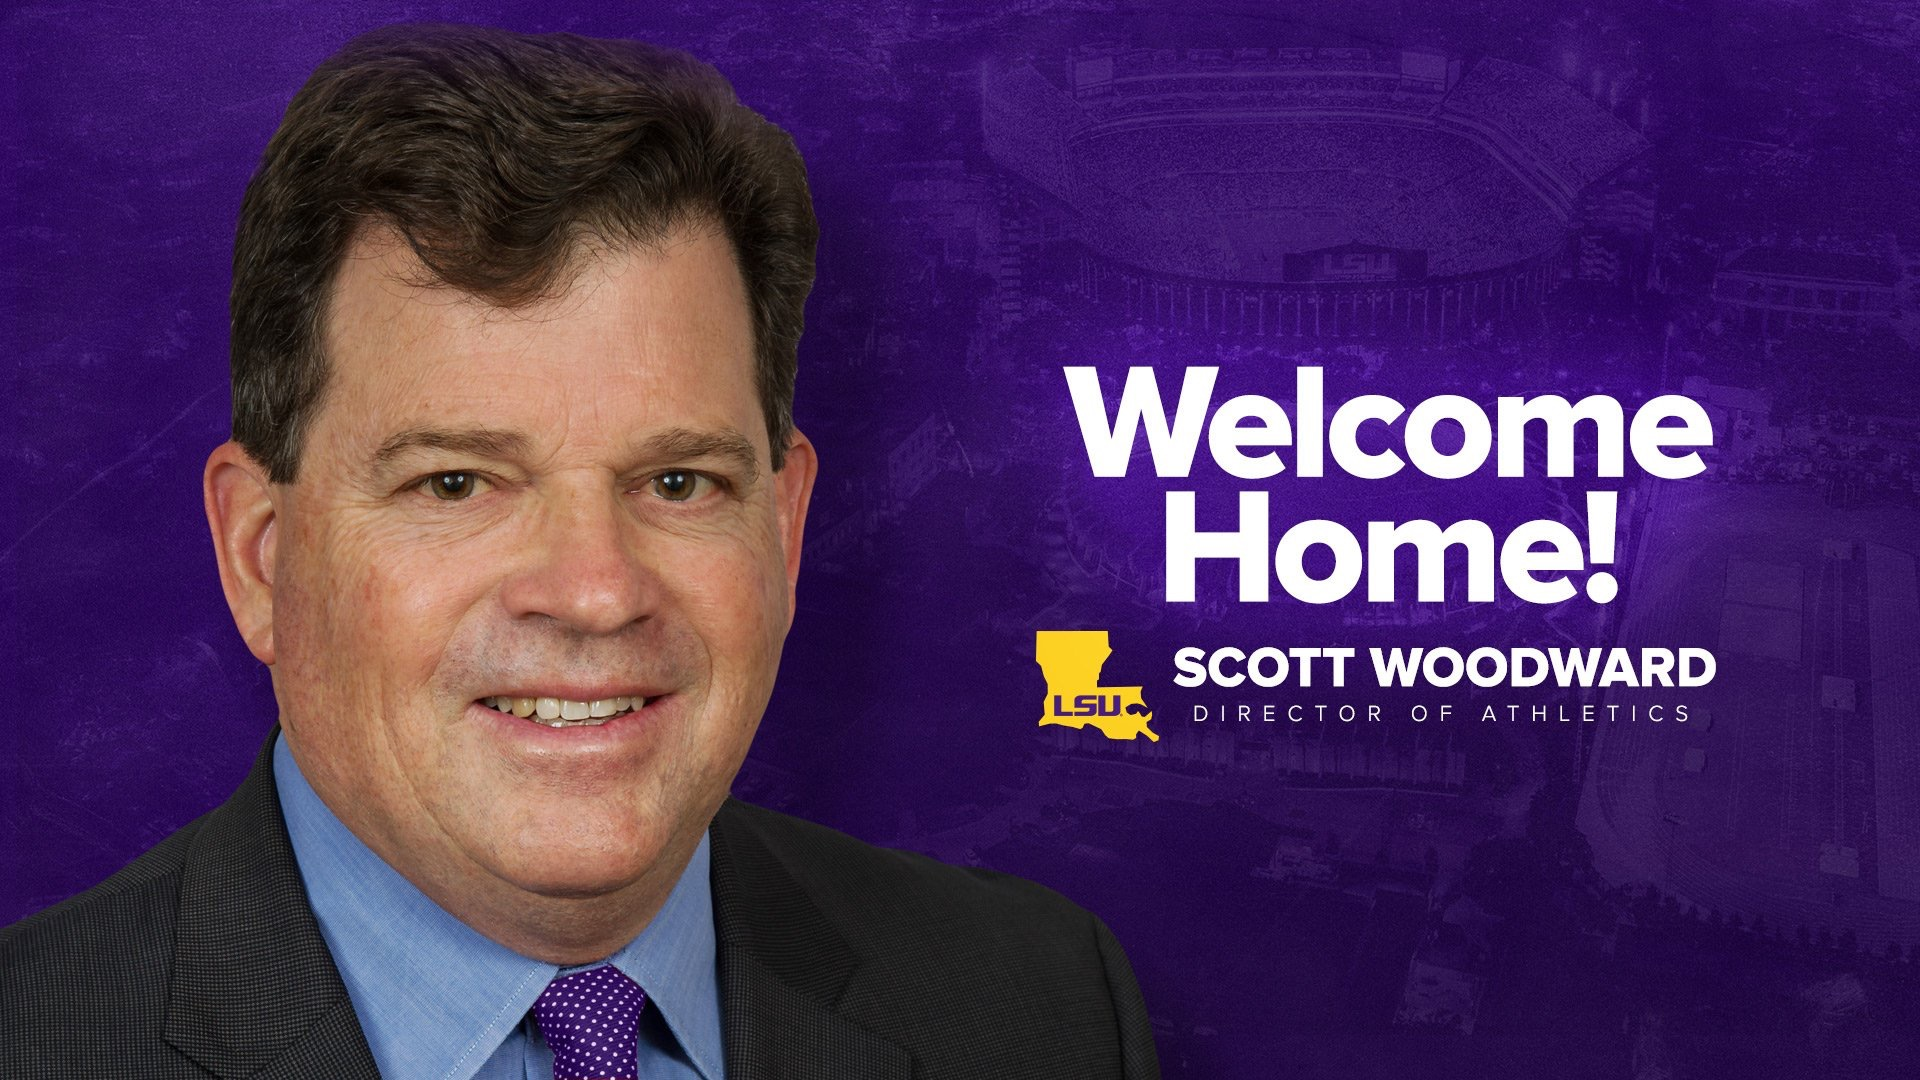 LSU names Scott Woodward Director of Athletics